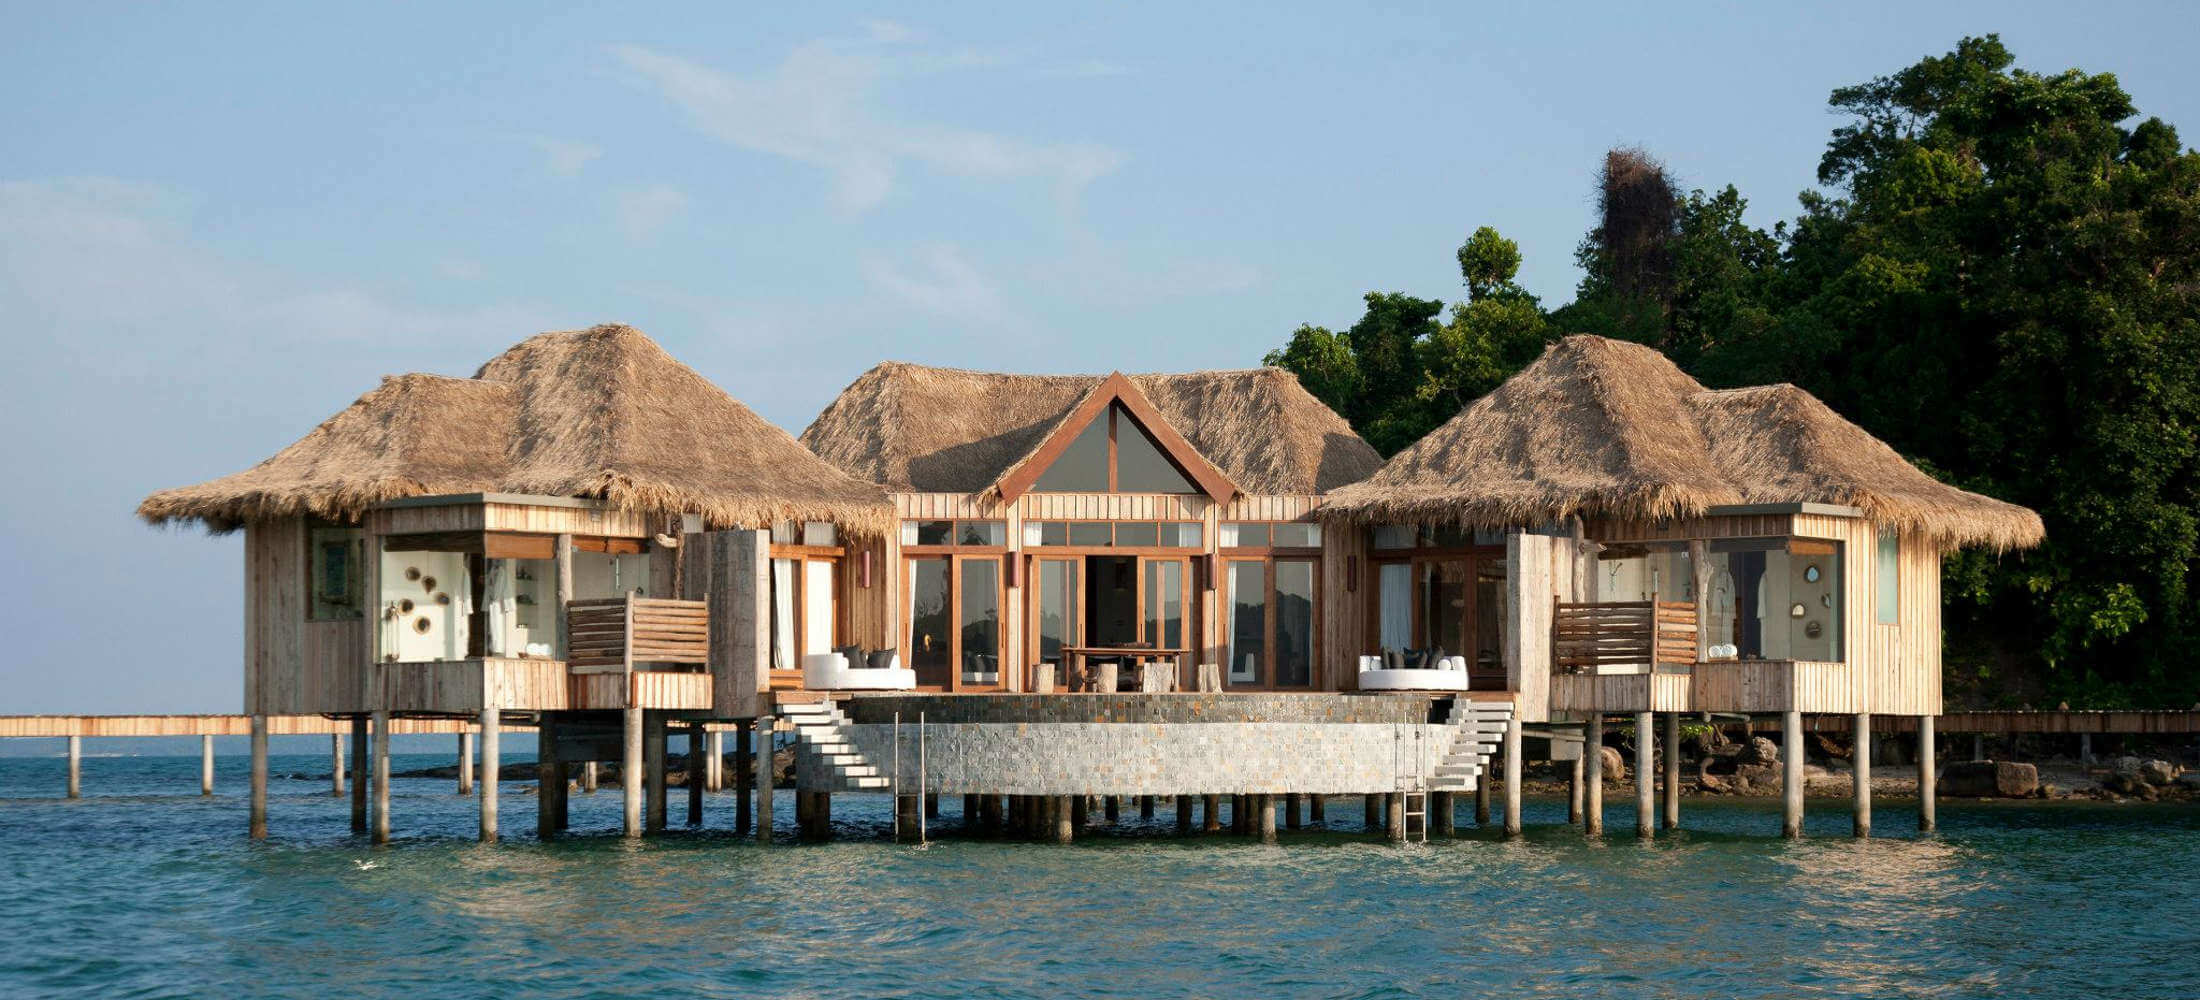 Song Saa Private Island accommodation